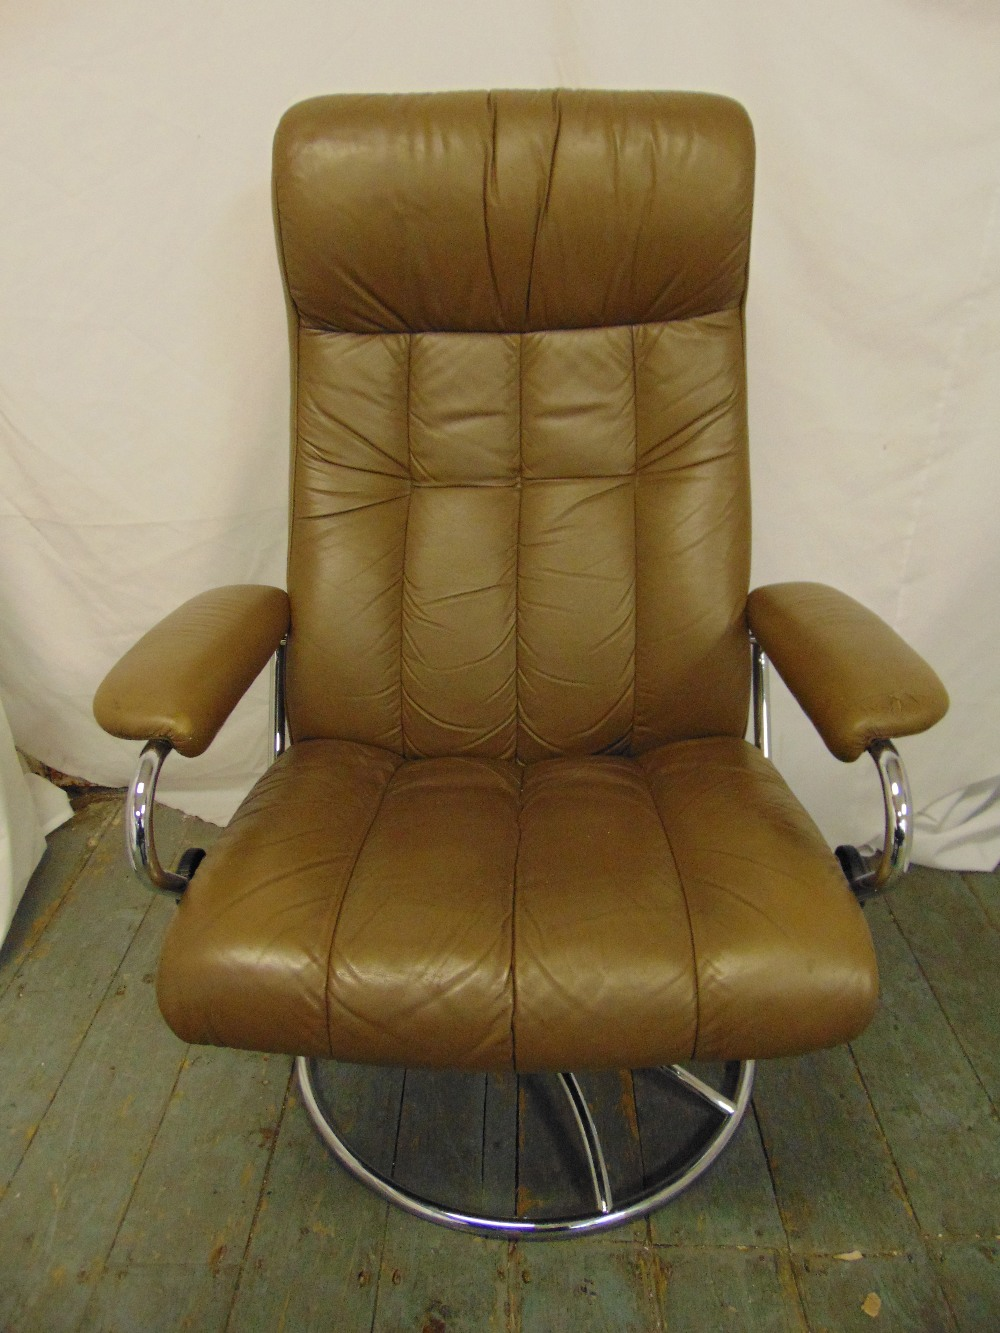 Lot 50 - A 1980s leather and chrome armchair revolving recliner